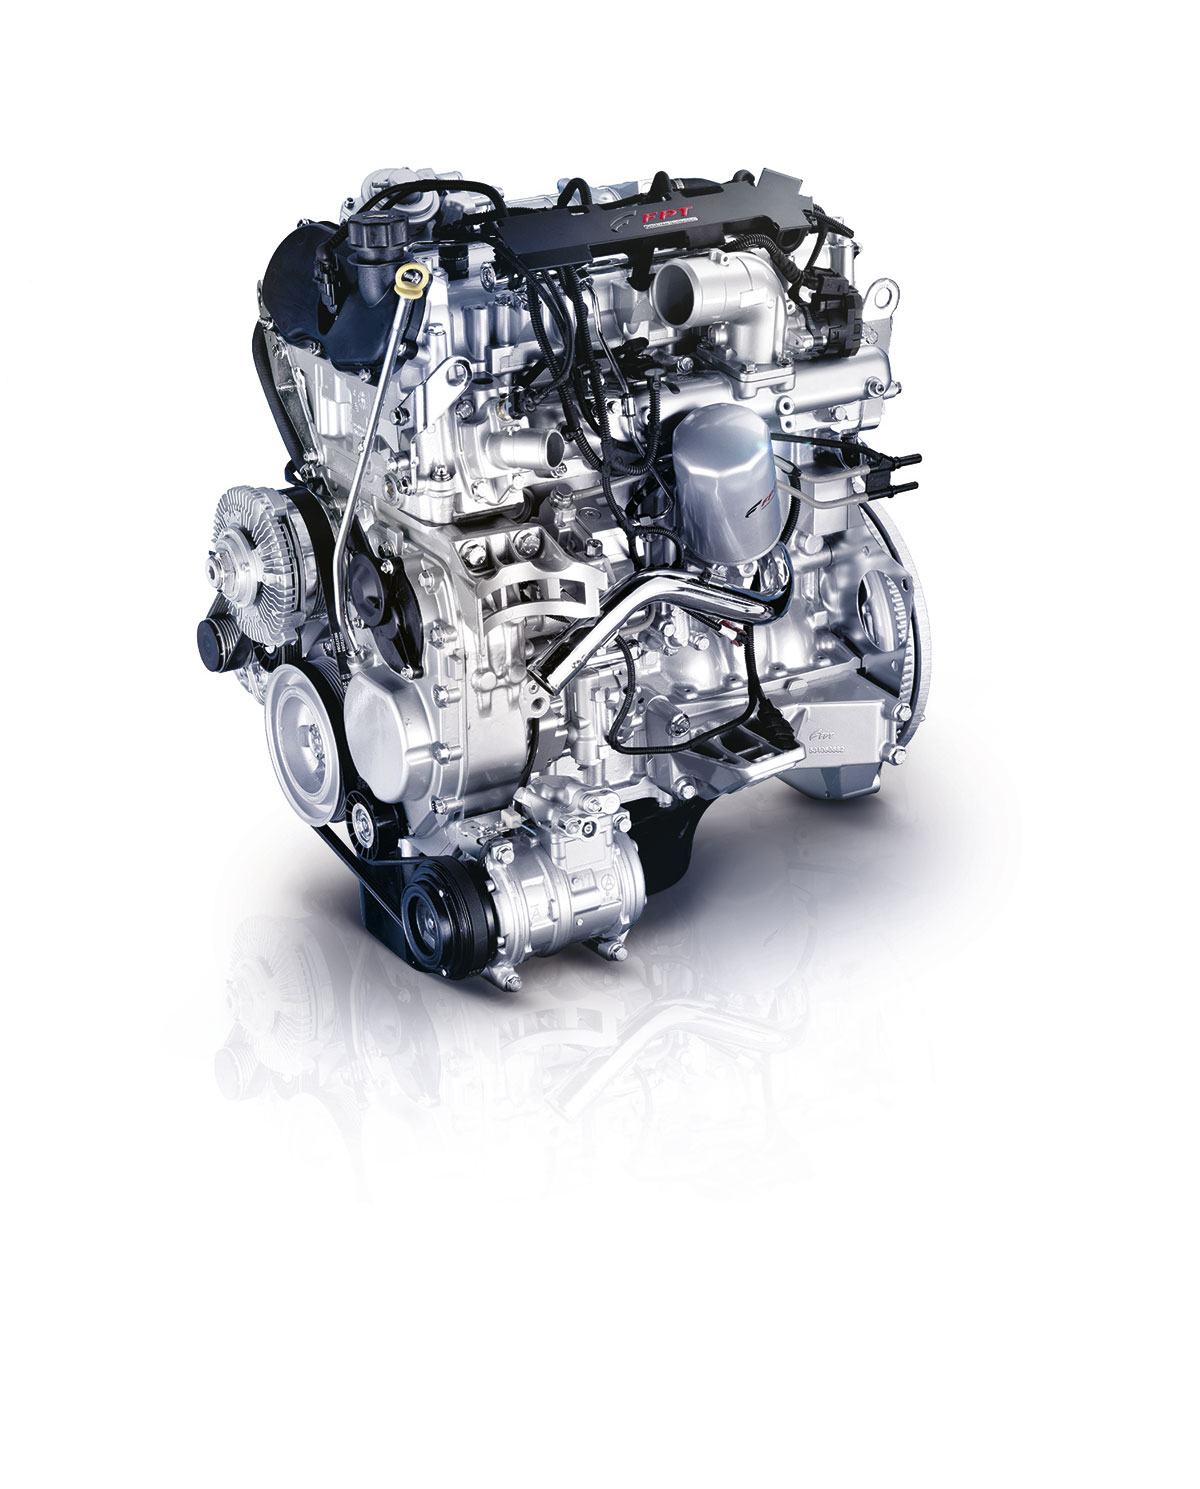 The excellent Euro5b and Euro6 2.3 litre and 3.0 litre diesels produce more power and torque at less revs and with greater fuel economy